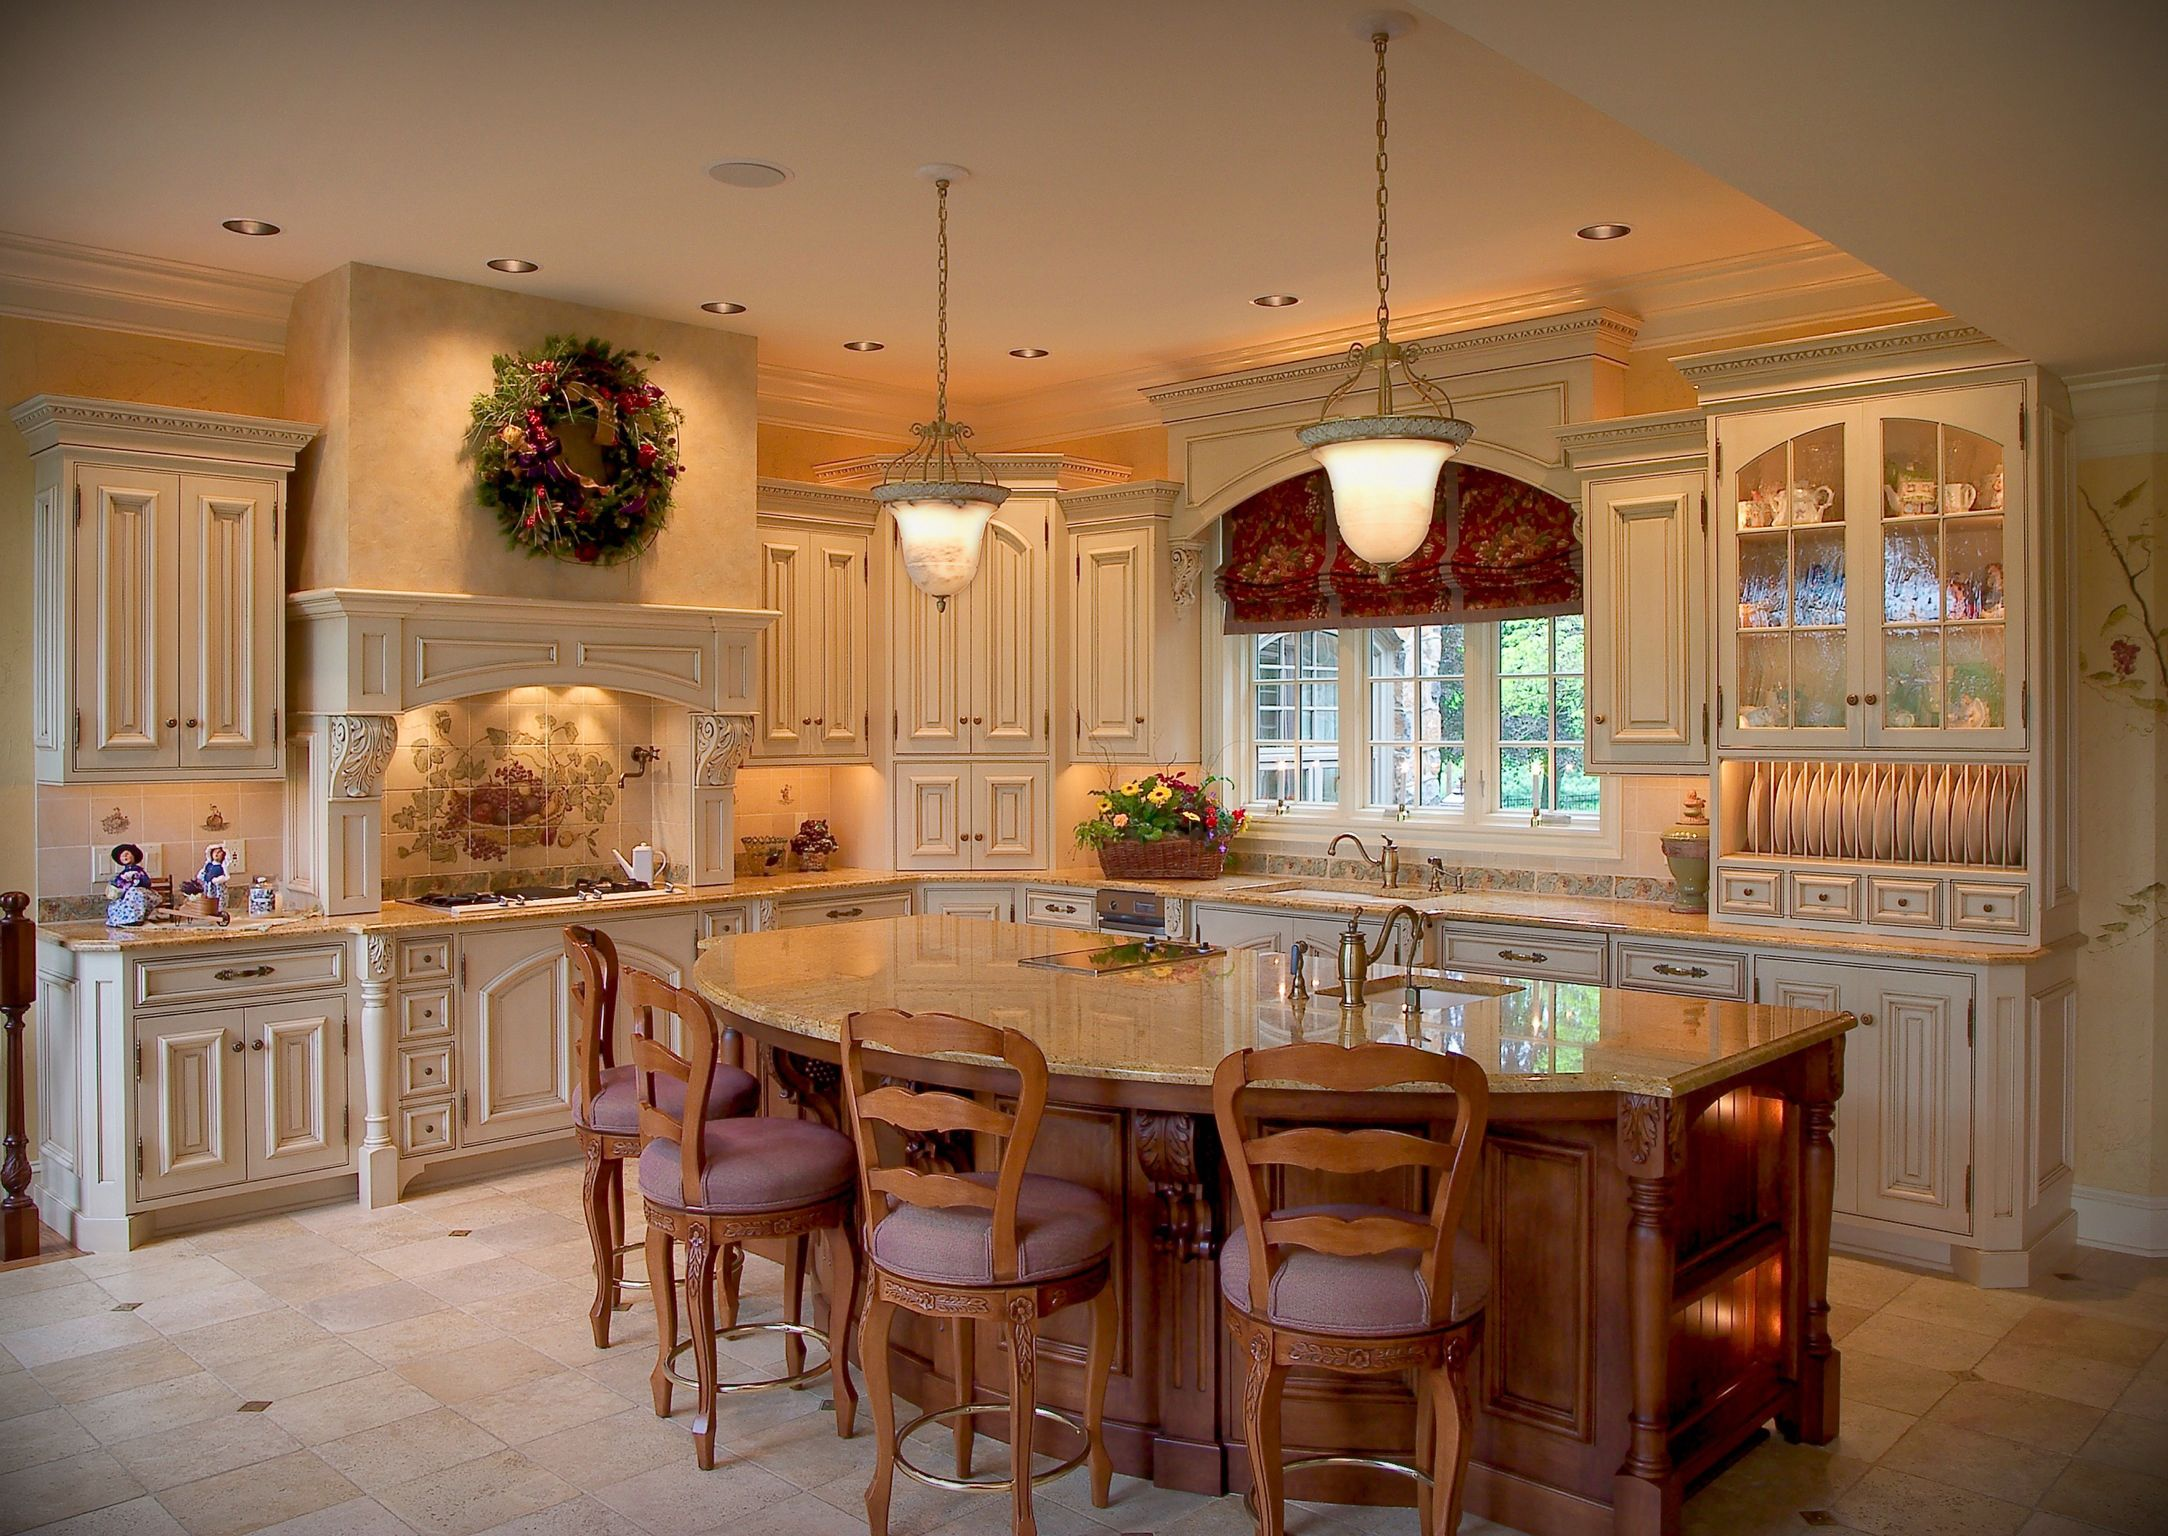 Granite Island Kitchen 17 Best Images About Kitchen Islands On Pinterest Countertops